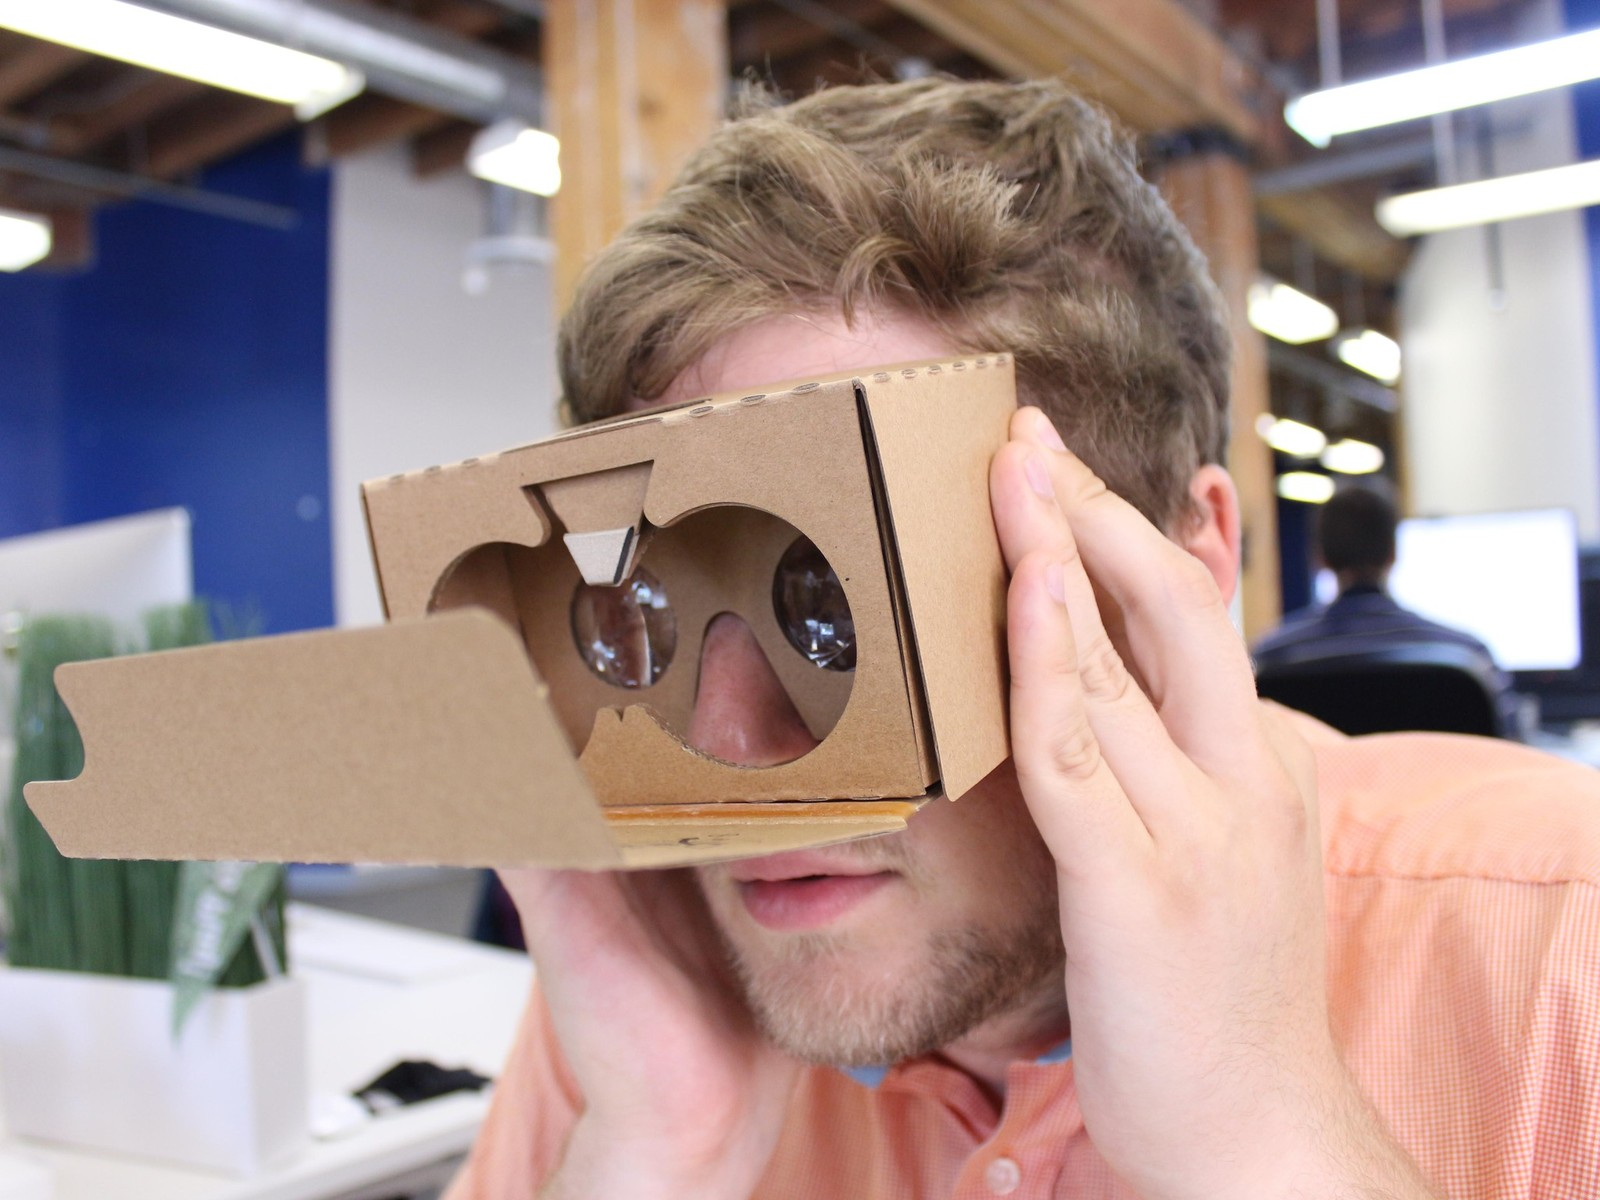 Before you slap the velcro strips on the side of the viewer, you'll want to try and line it up so you place them in line with your forehead temples. This should make for a more comfortable Cardboard experience.